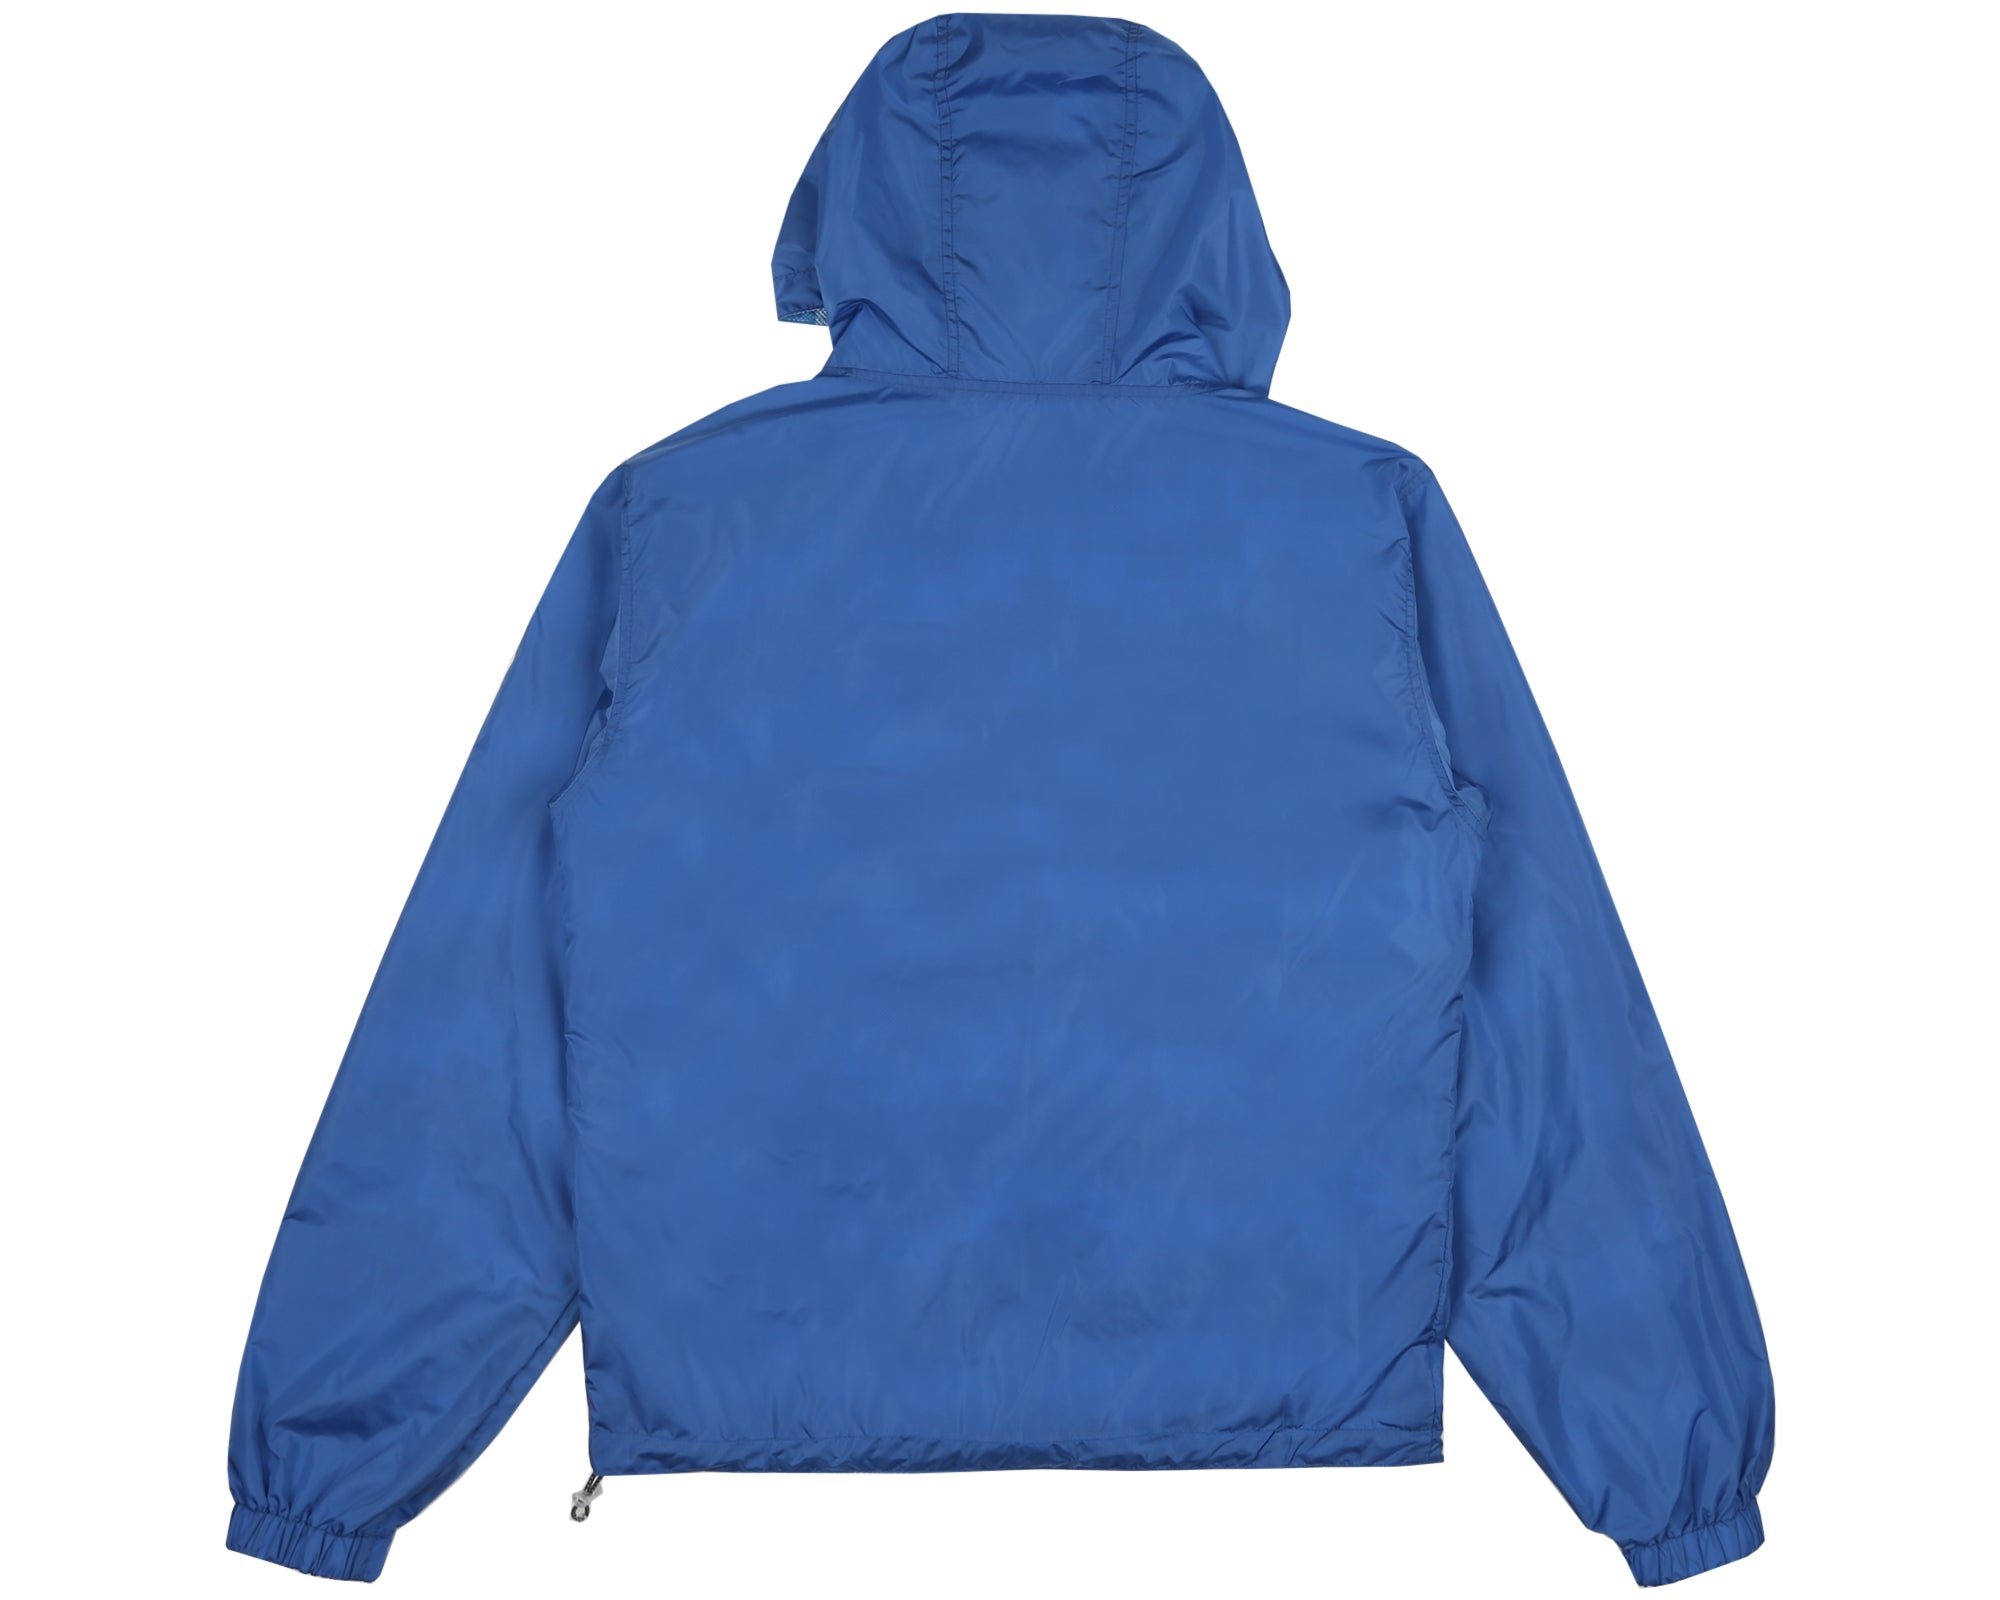 REVERSIBLE HOODED JACKET - BLUE